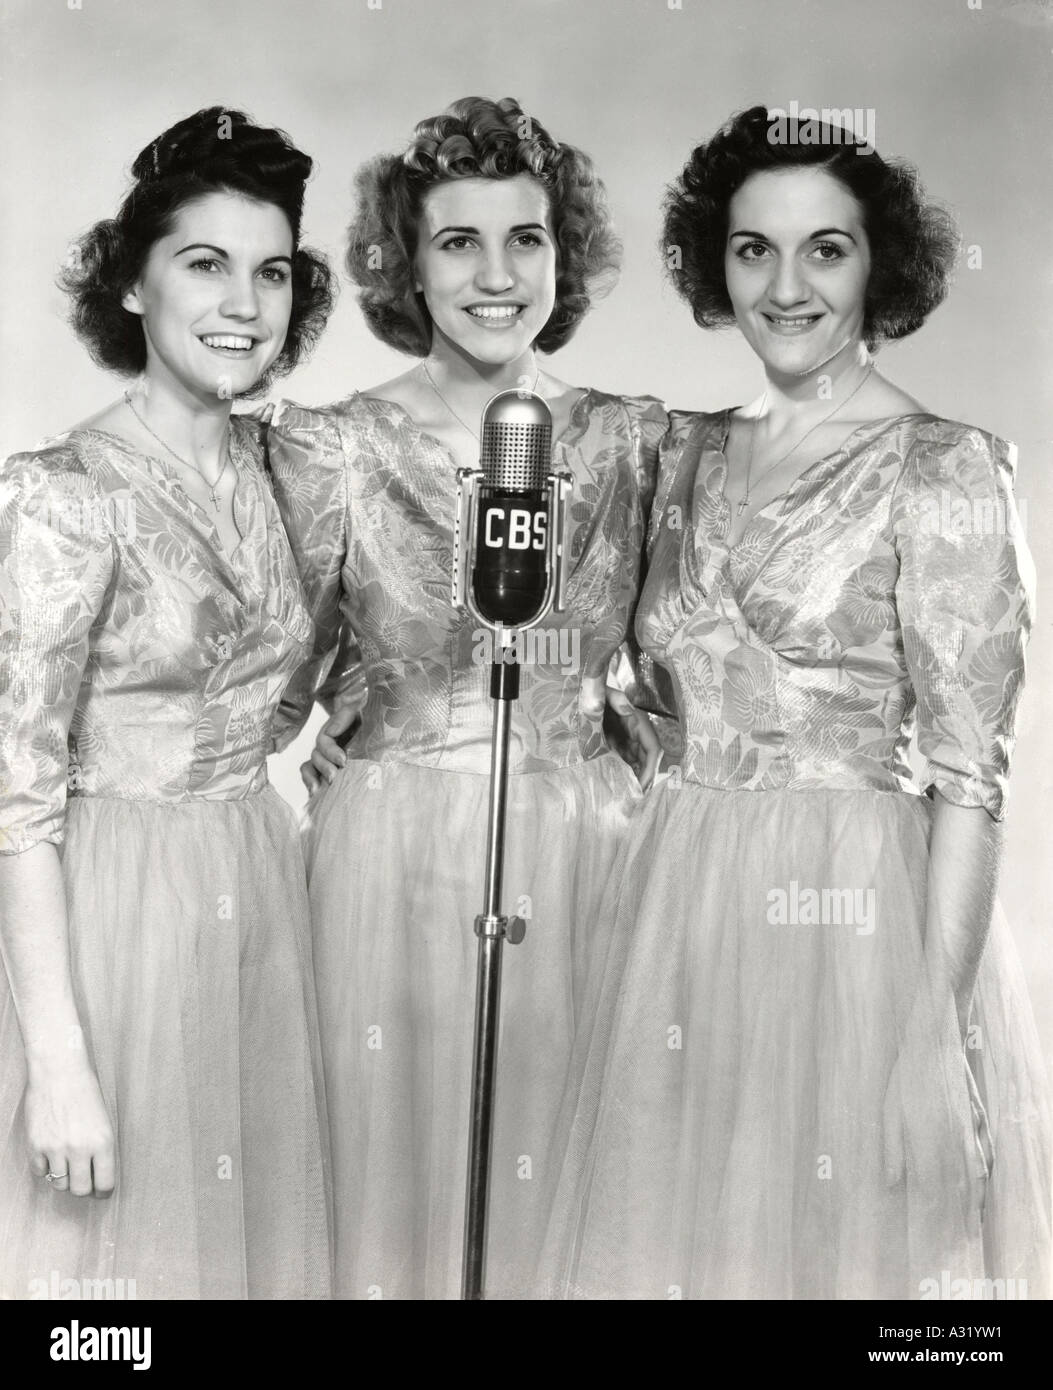 ANDREWS SISTERS US vocal group from left Maxene, Patty and LaVerne - Stock Image